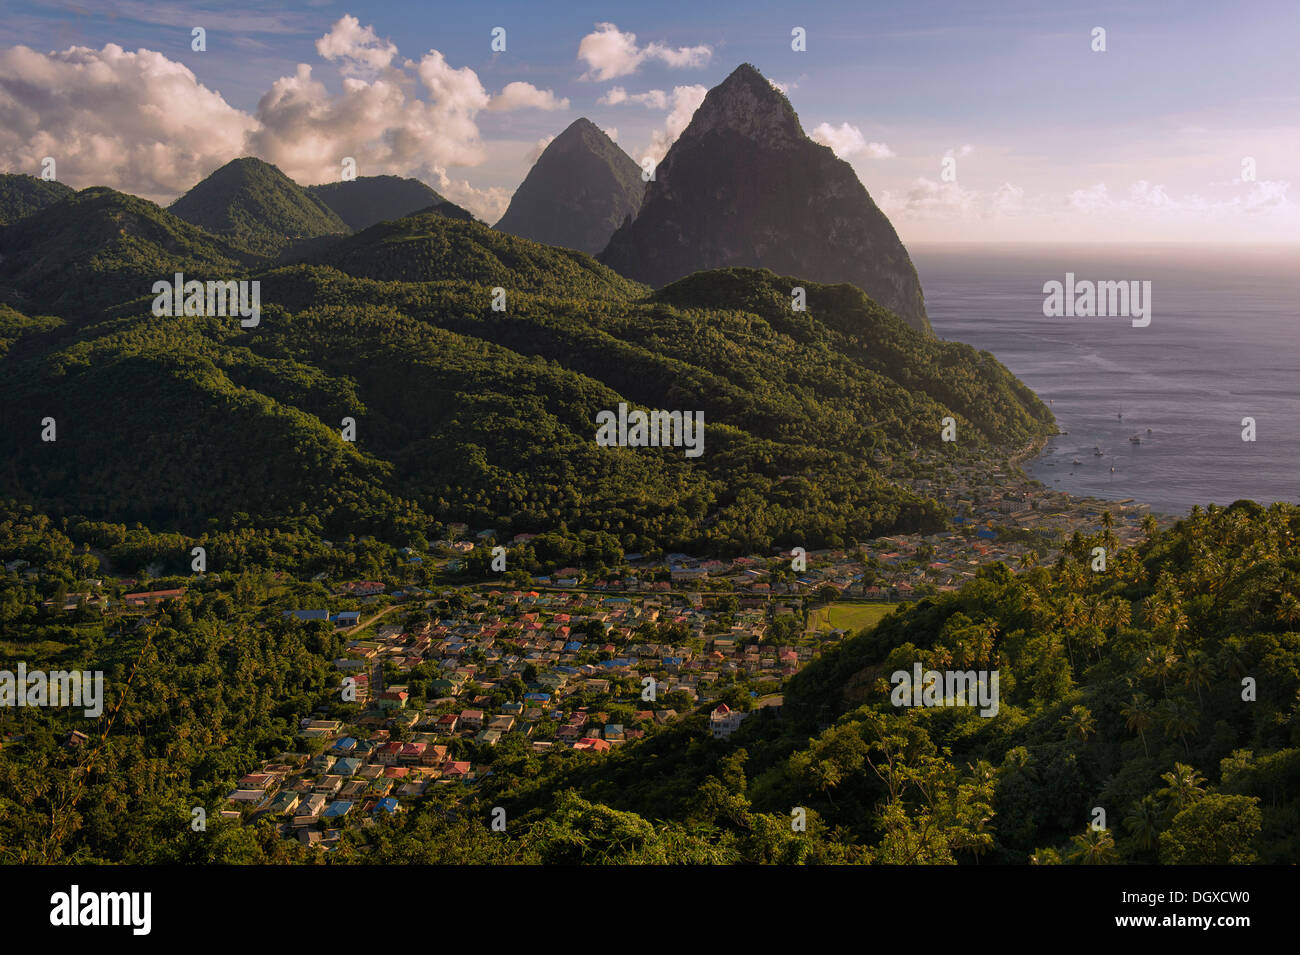 Gros Piton and Petit Piton, volcanic cores, in front of the village of Soufrière, Soufrière, Pitons-Schutzgebiet, Stock Photo